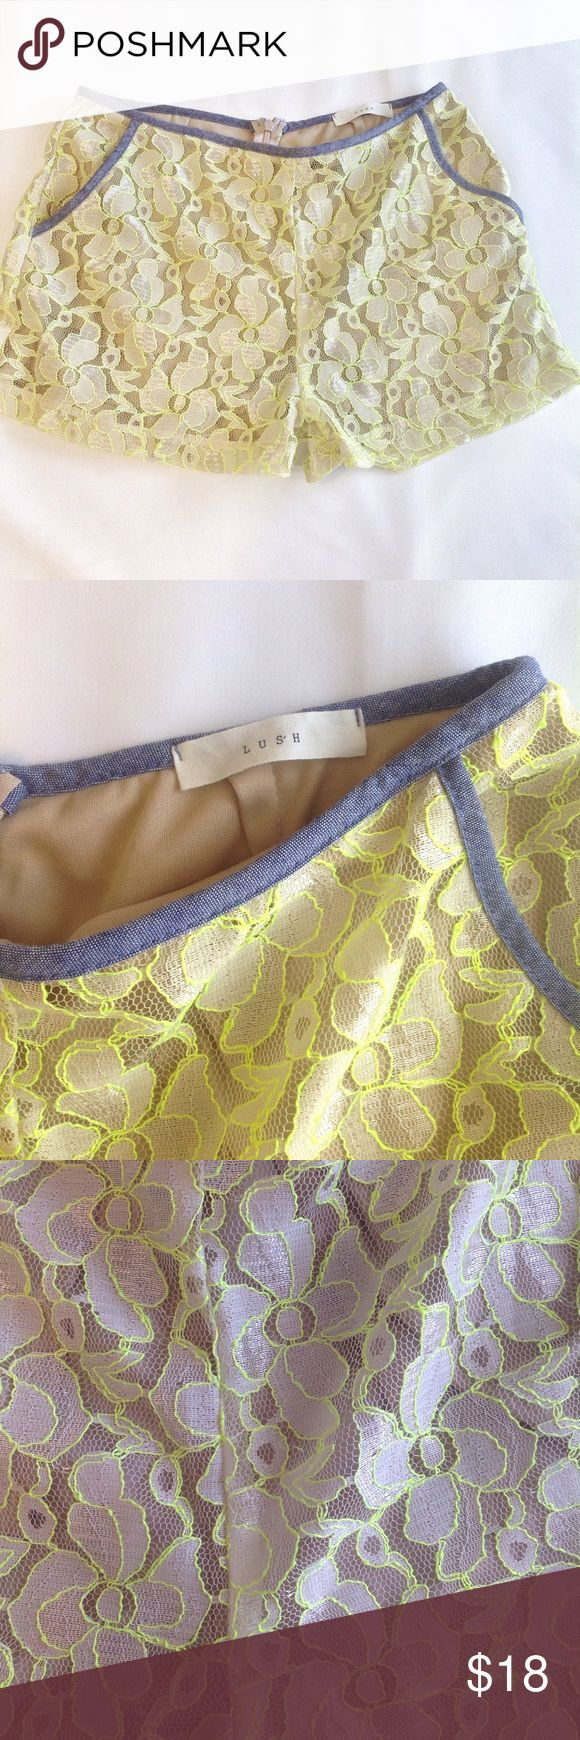 Lush Lace Neon Shorts sz Small Super cute shorts, great condition! Lush Shorts